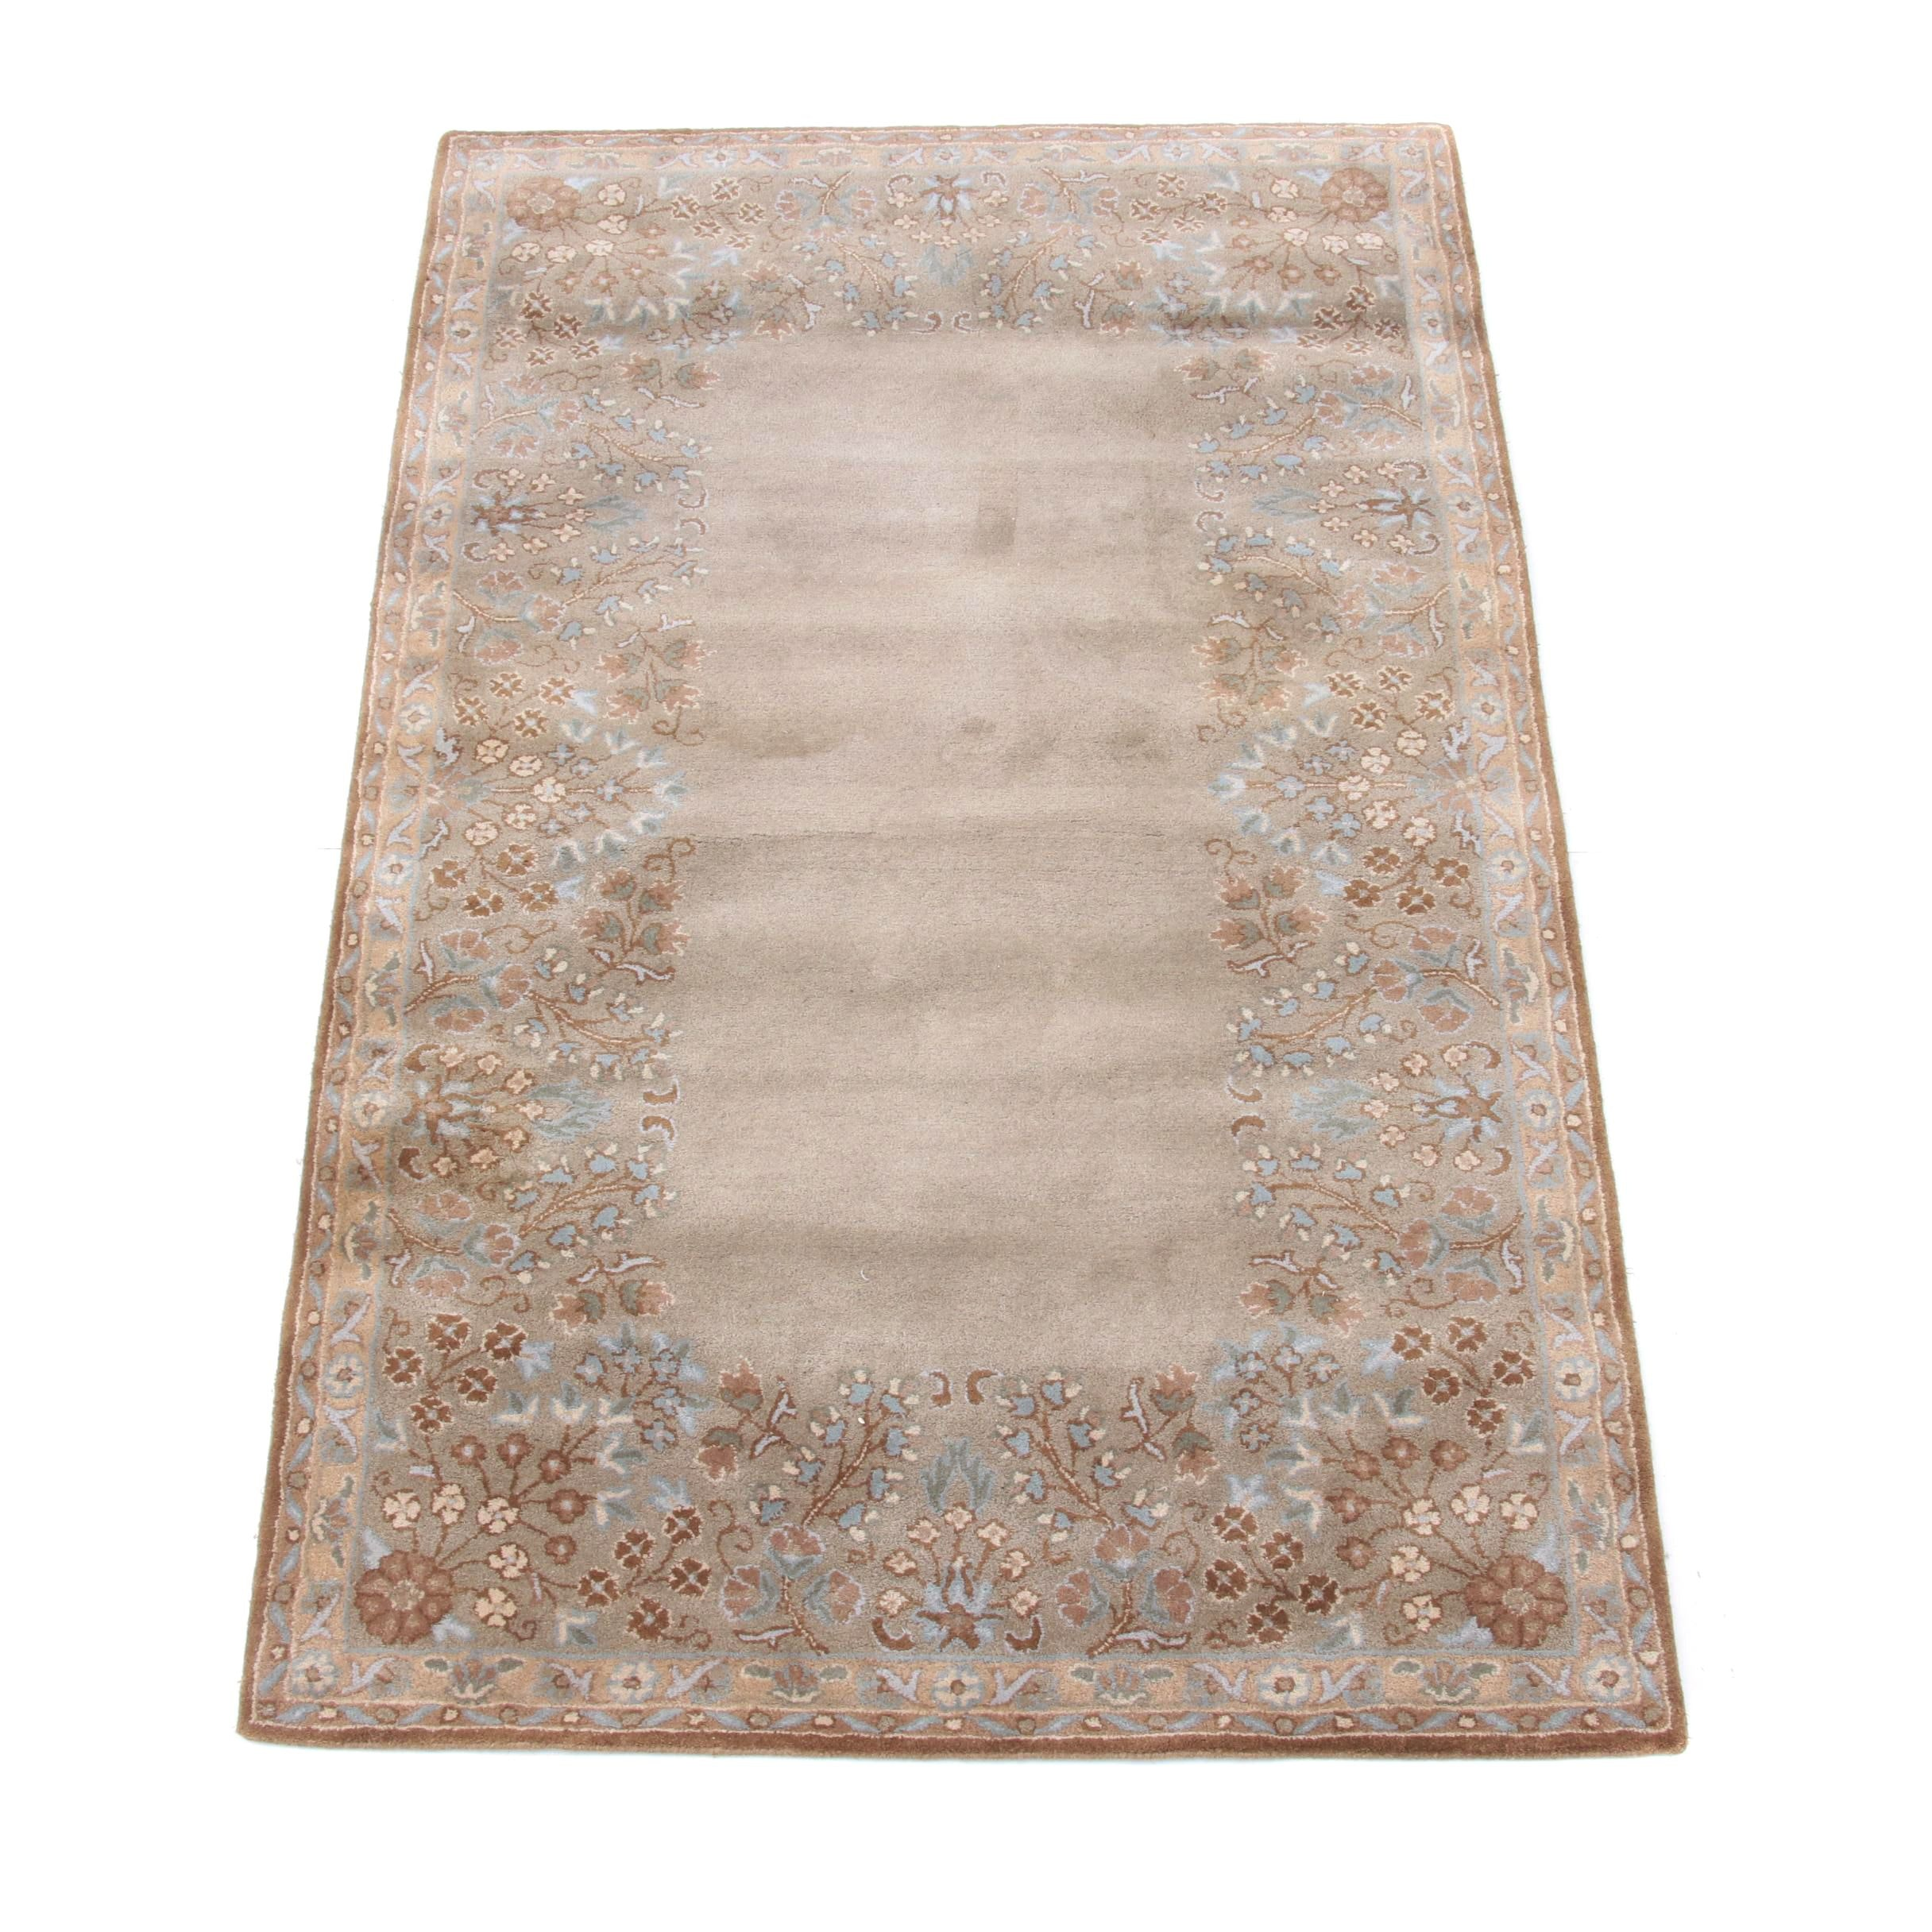 Contemporary Tufted Indian Area Rug